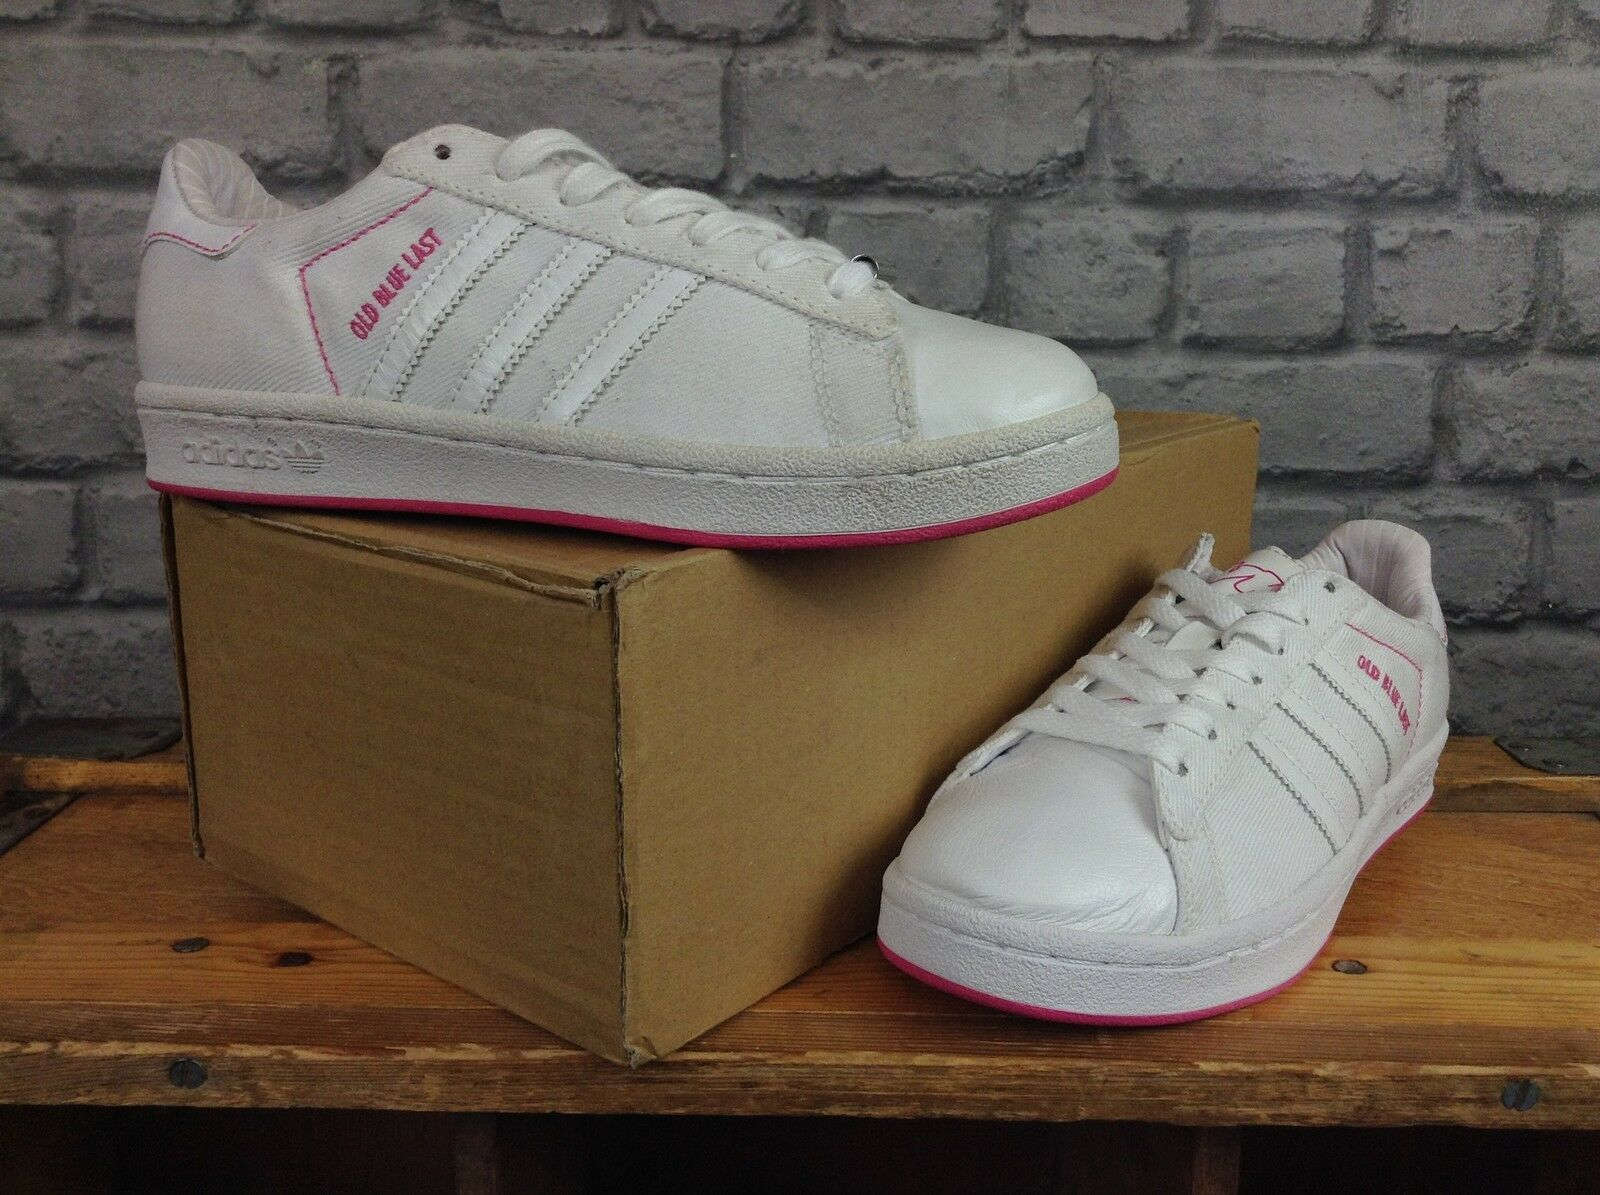 ADIDAS LADIES LADIES LADIES UK 5 EU 38 VICE OLD Blau LAST Weiß Rosa LEATHER CANVAS TRAINERS  | Feinbearbeitung